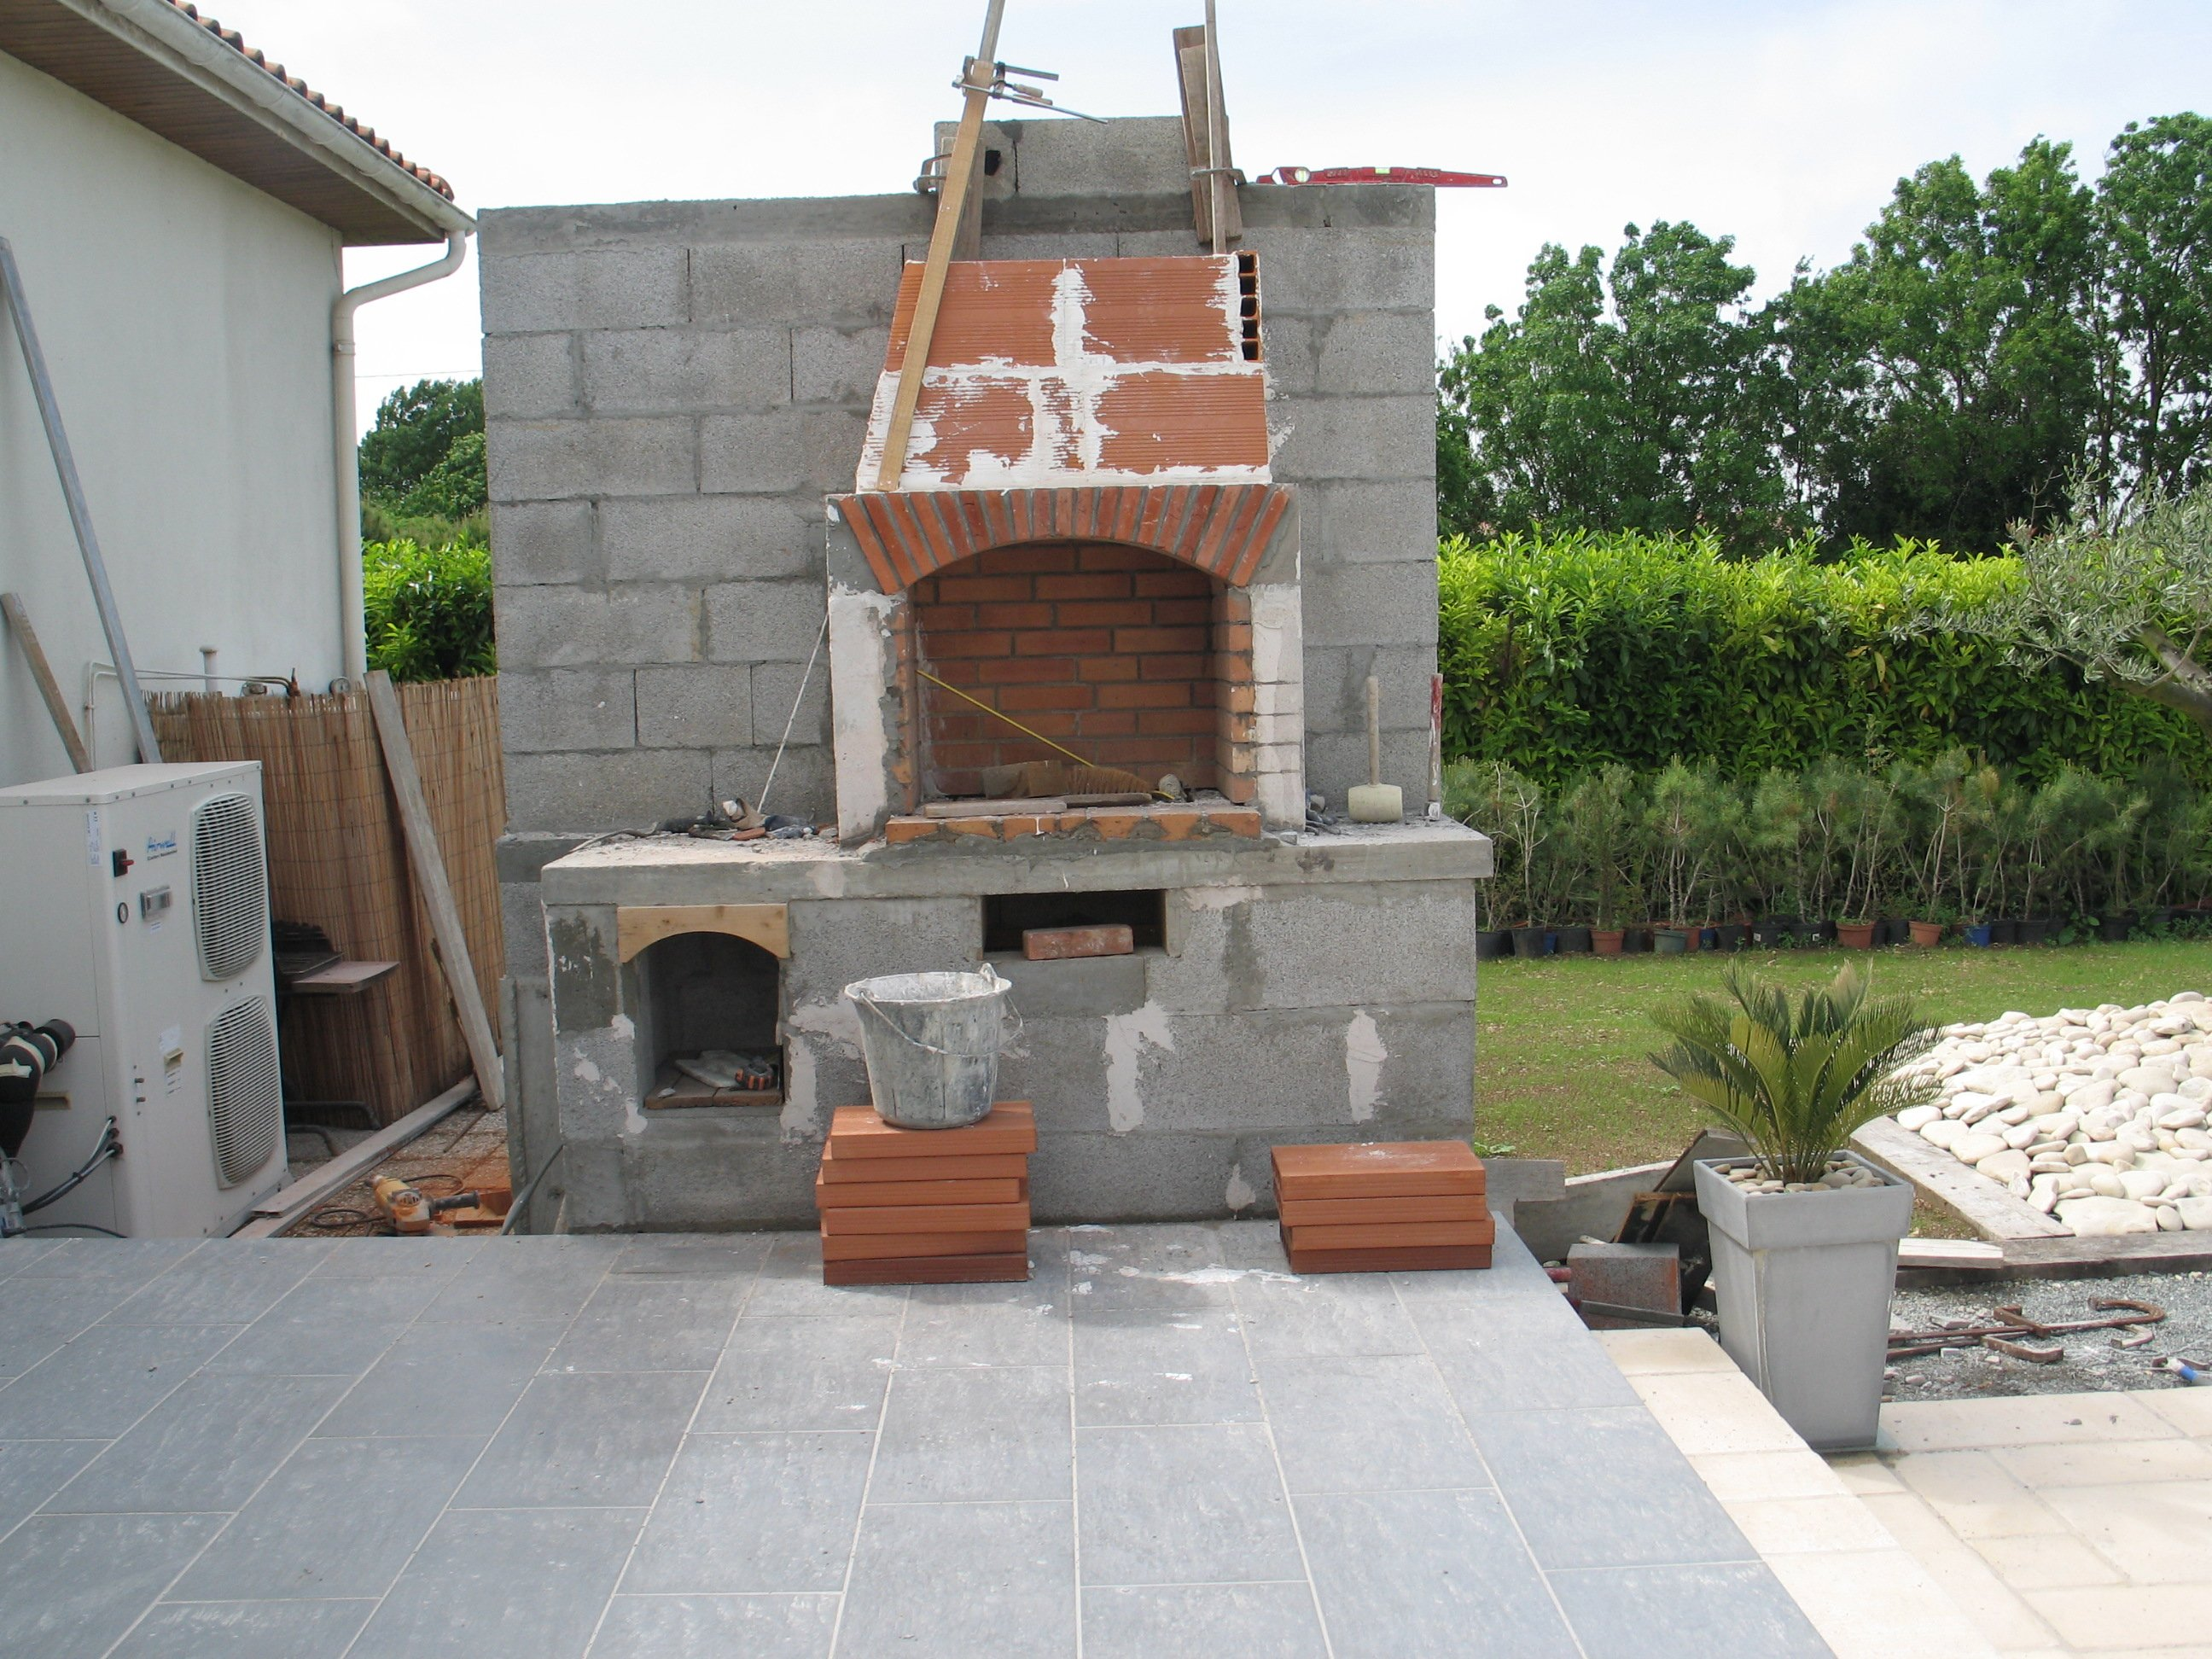 Construire son barbecue archives du blog l avaloir for Modele de barbecue exterieur en brique